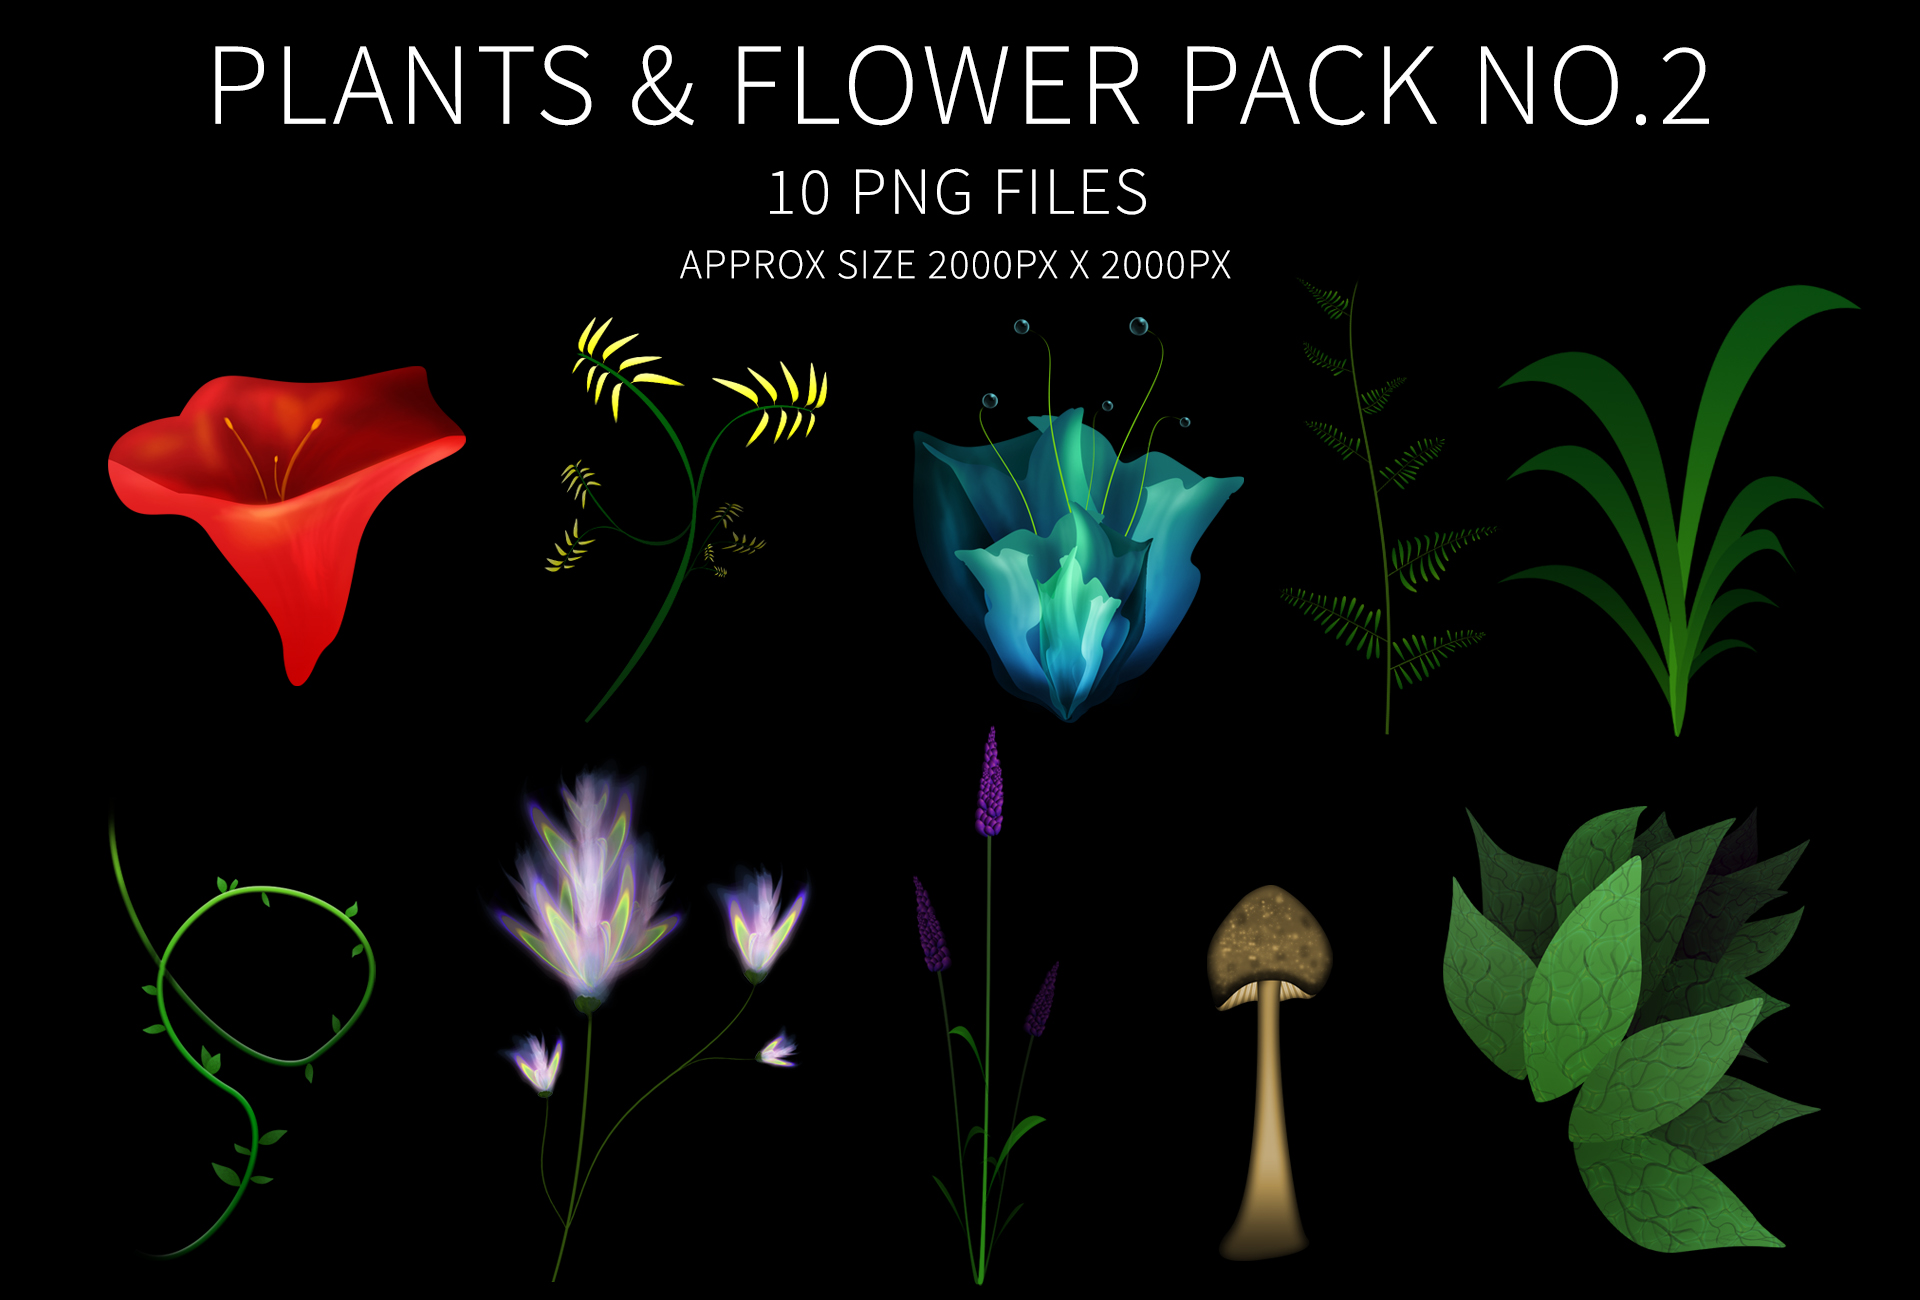 Plants flower pack 2